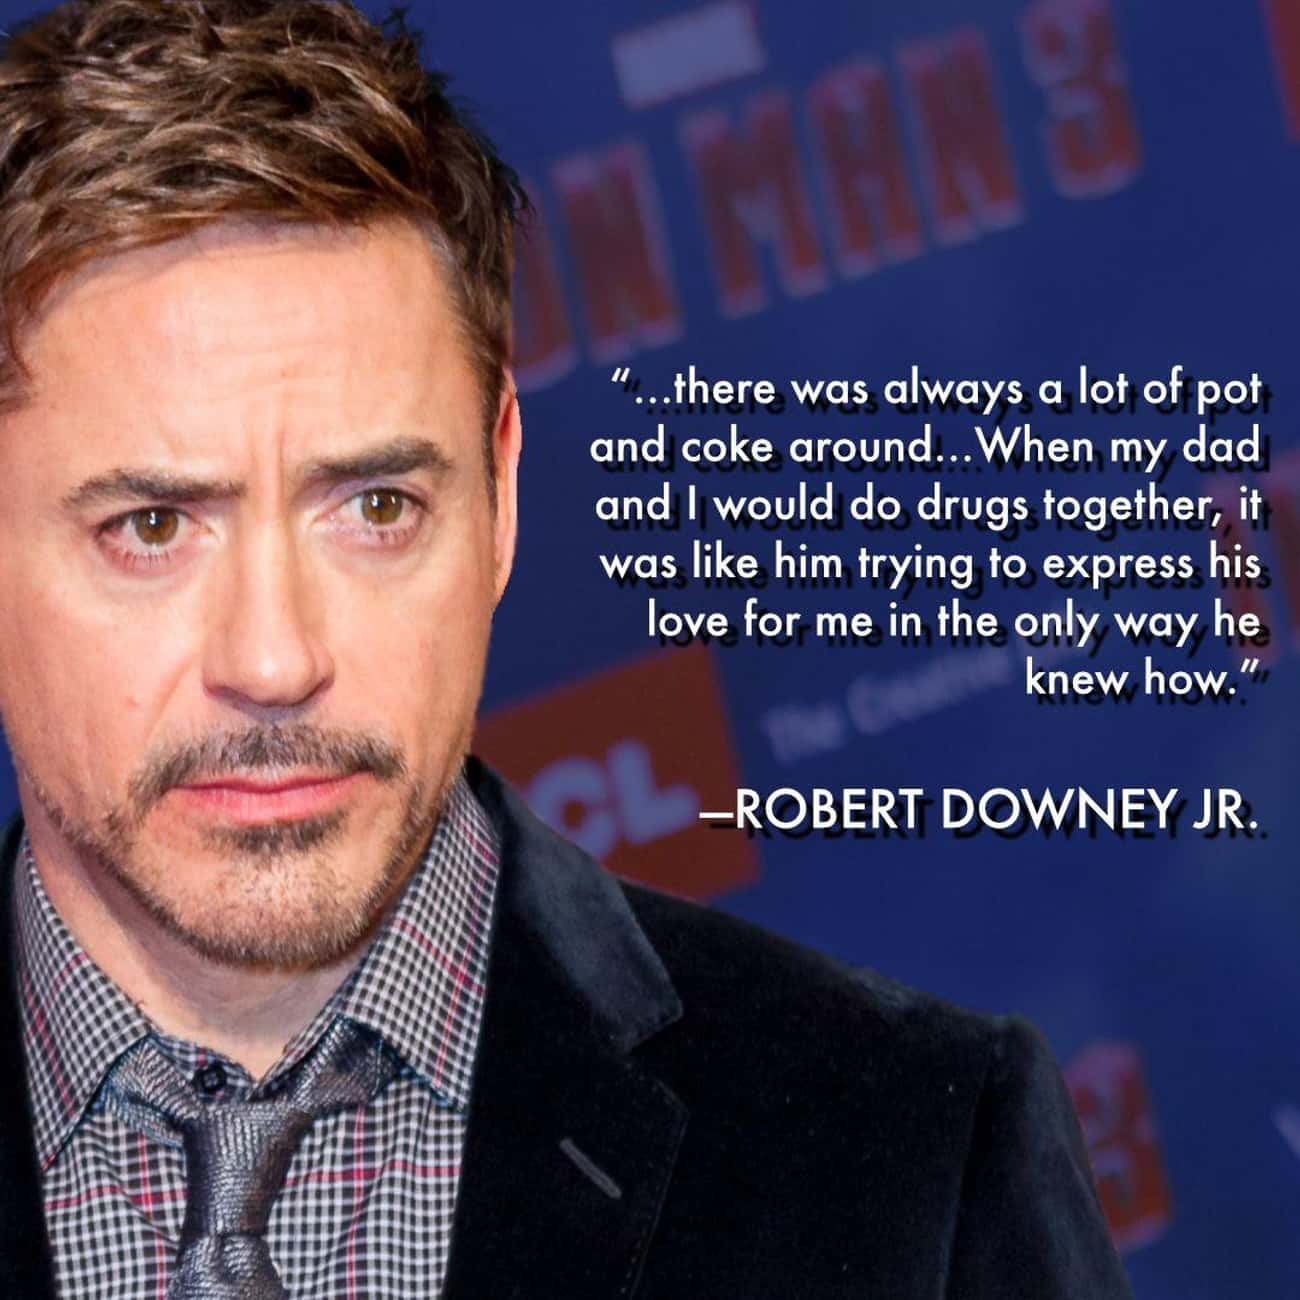 RDJ's History With Substances Began With His Father